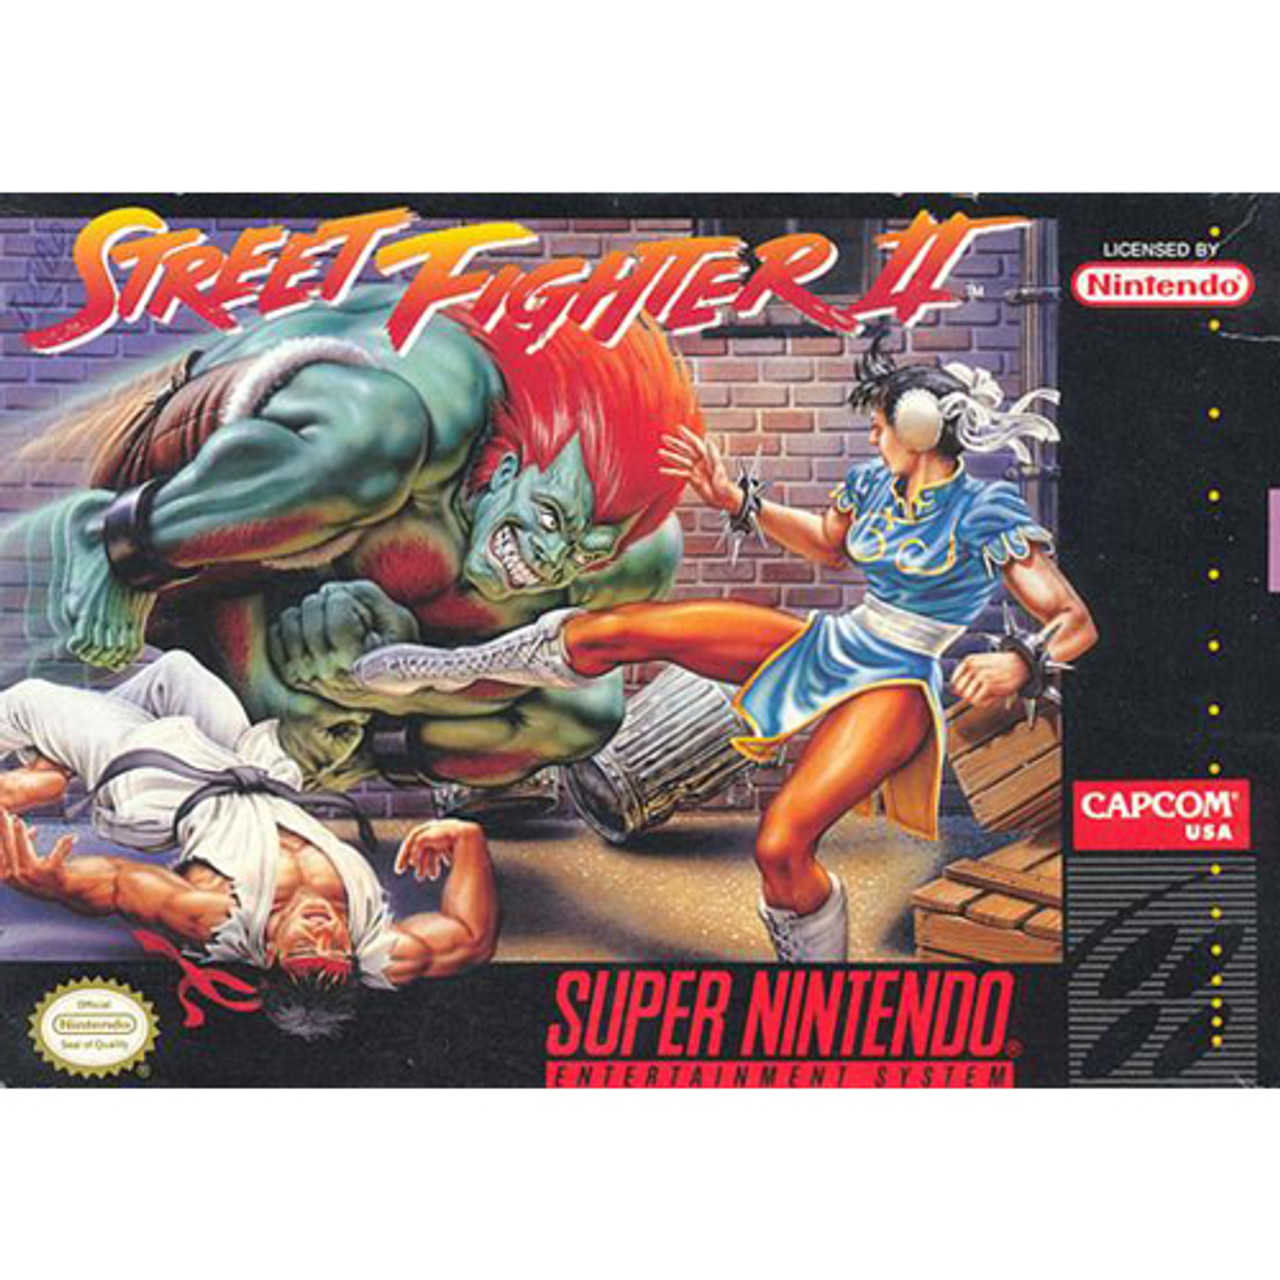 Street Fighter Ii Super Nintendo Snes Game For Sale Dkoldies